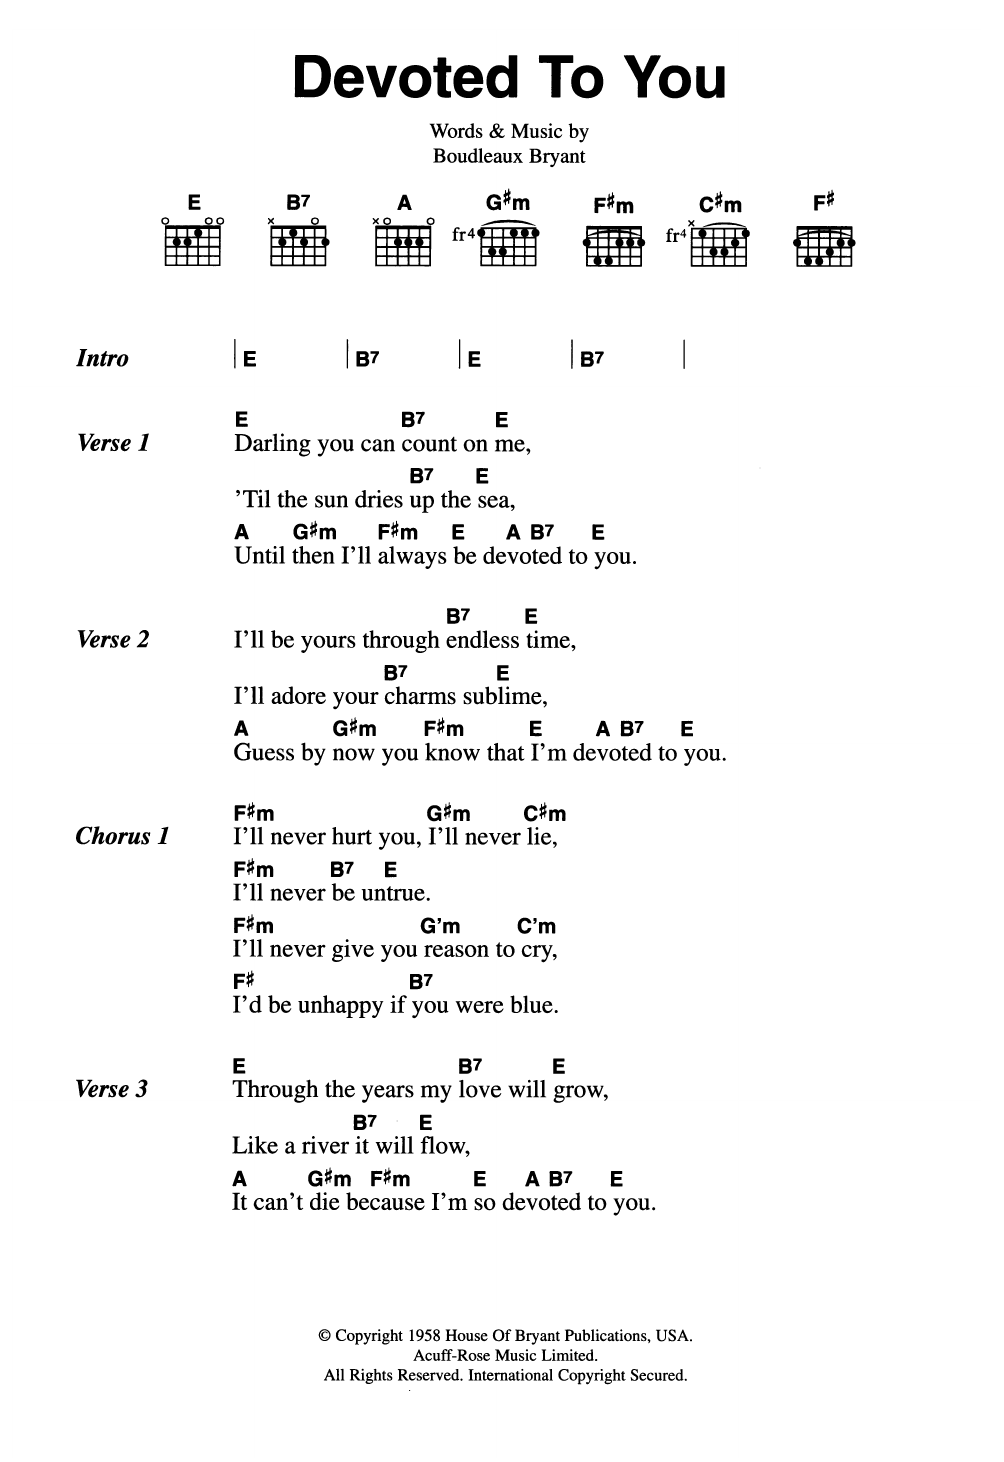 The everly brothers devoted to you sheet music at stantons format guitar chord hexwebz Image collections